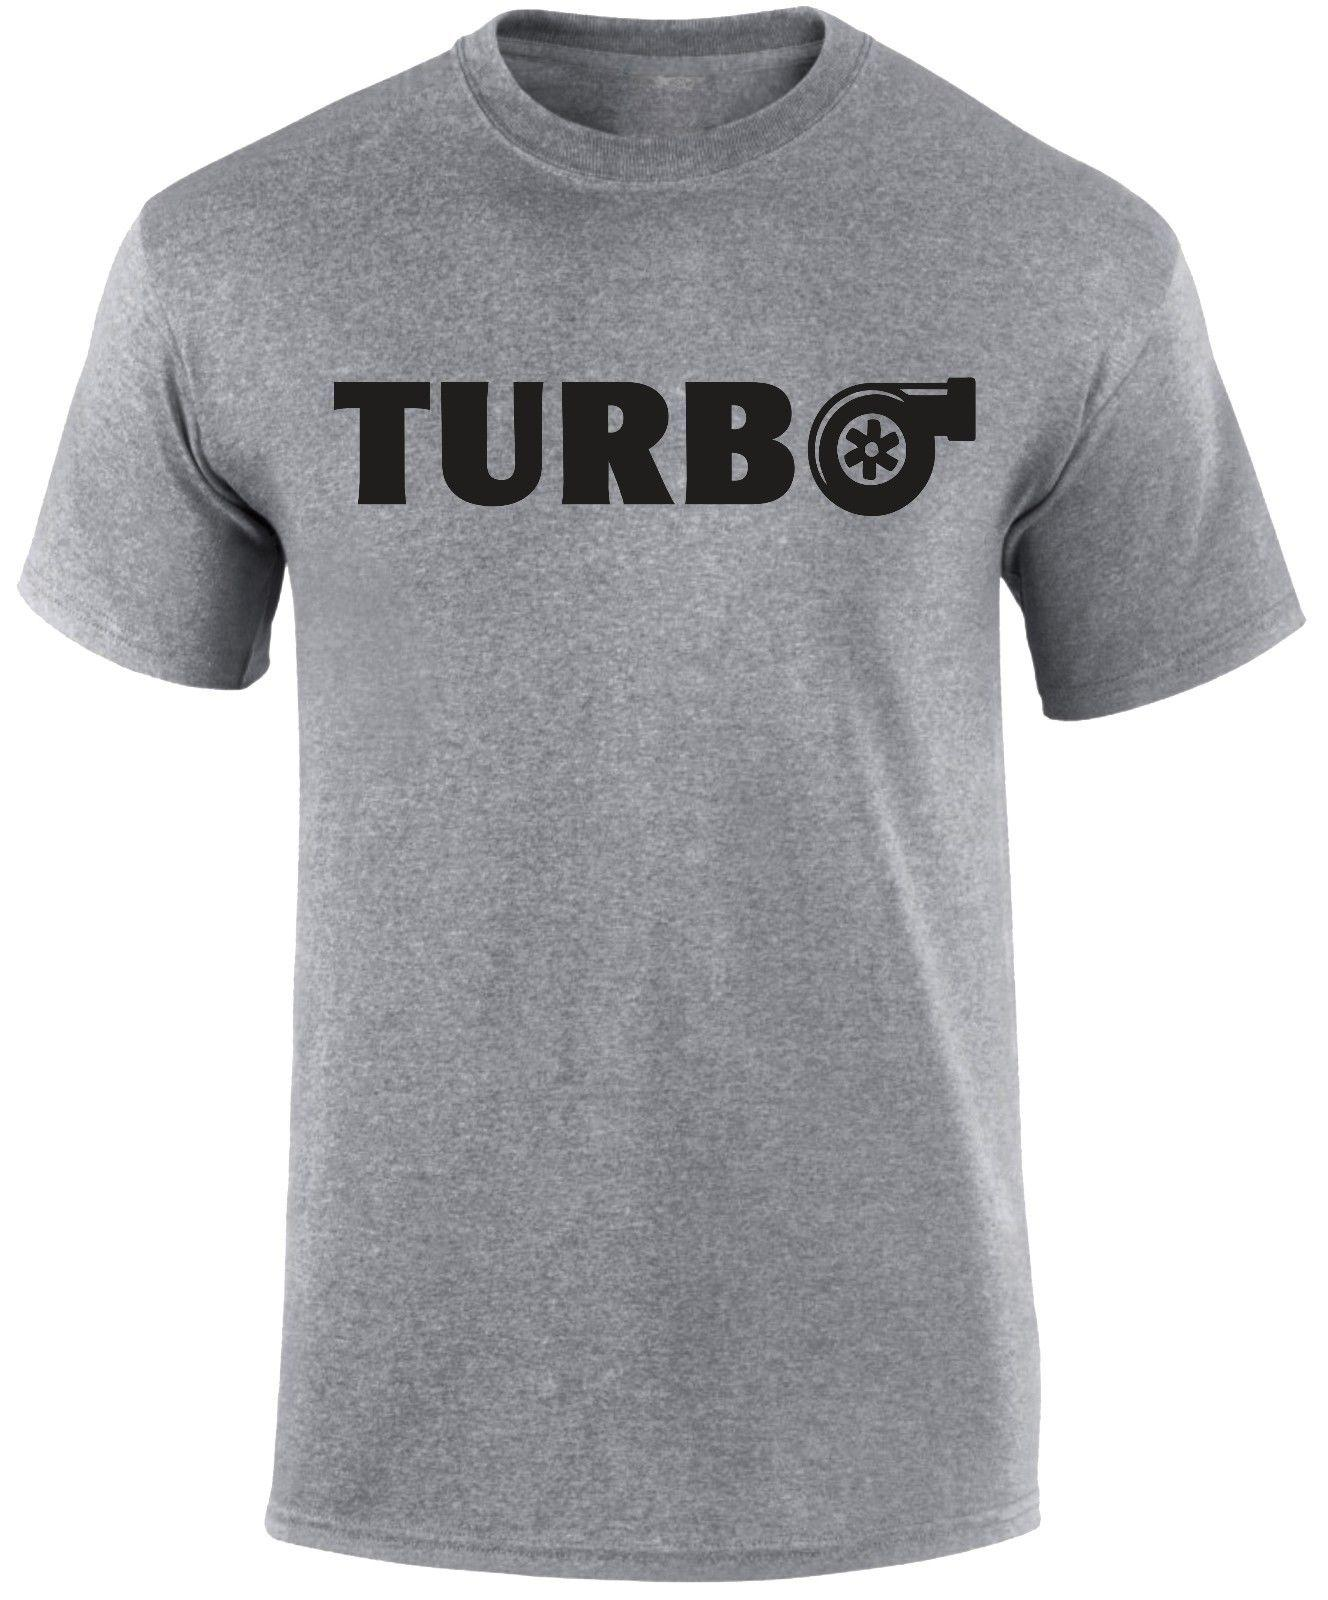 Turbo Automobile Car Speedo Slogan Funny MenS T Shirt Top Birthday Gift MENS SHIRT Tee Printed Men Classic Casual Shirts For Guys Fashion